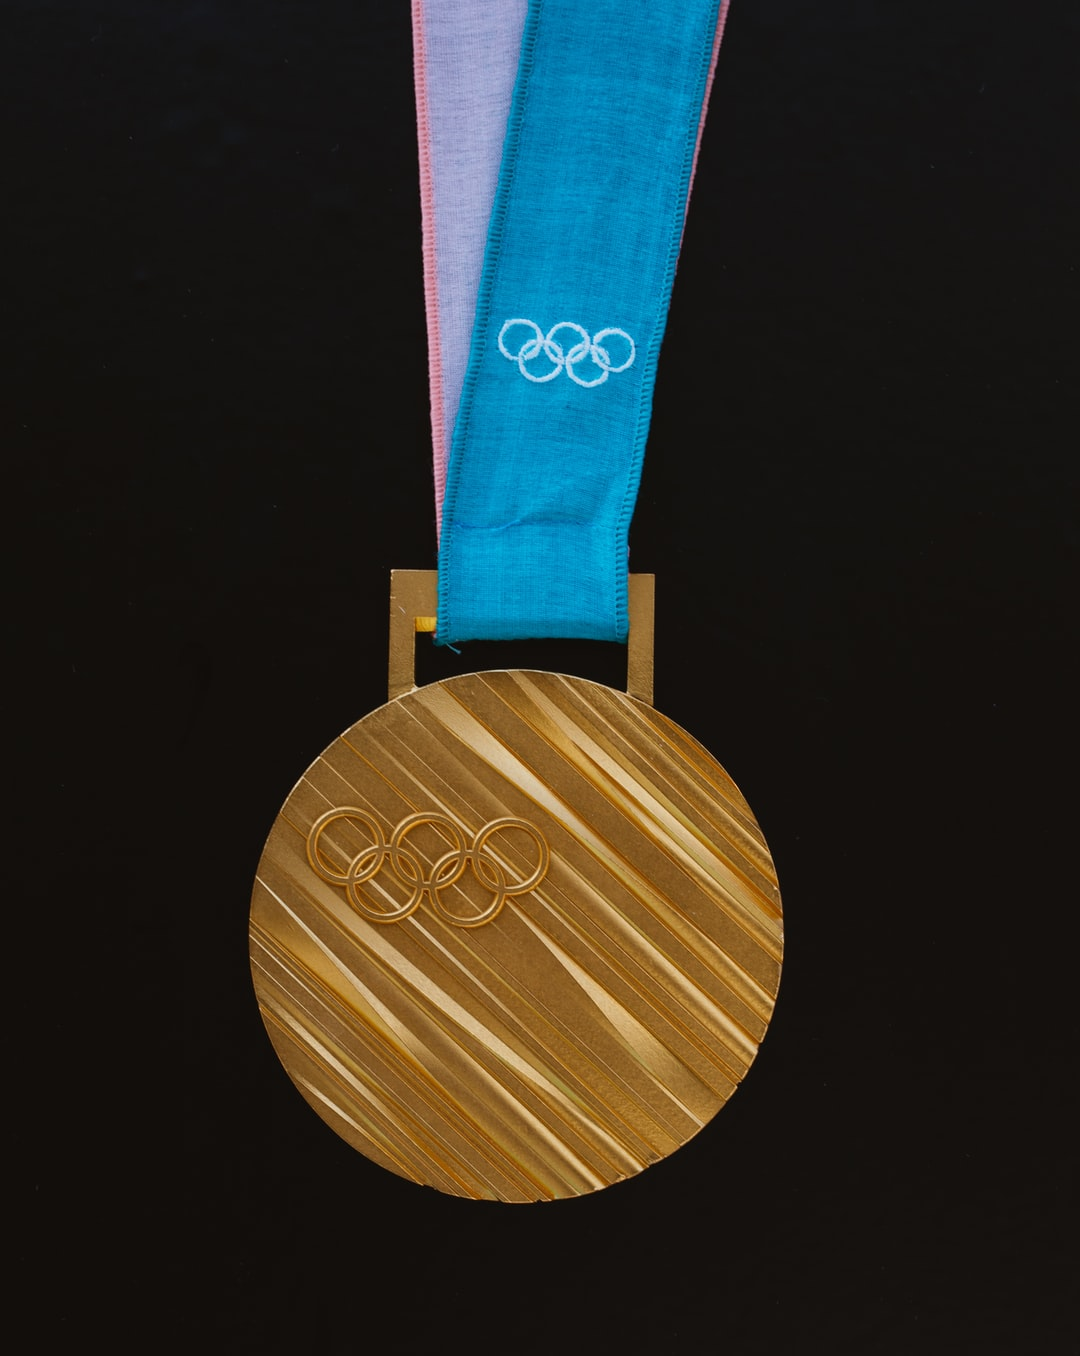 Software Testing as an Olympic Sport: 5 Tips For Gold